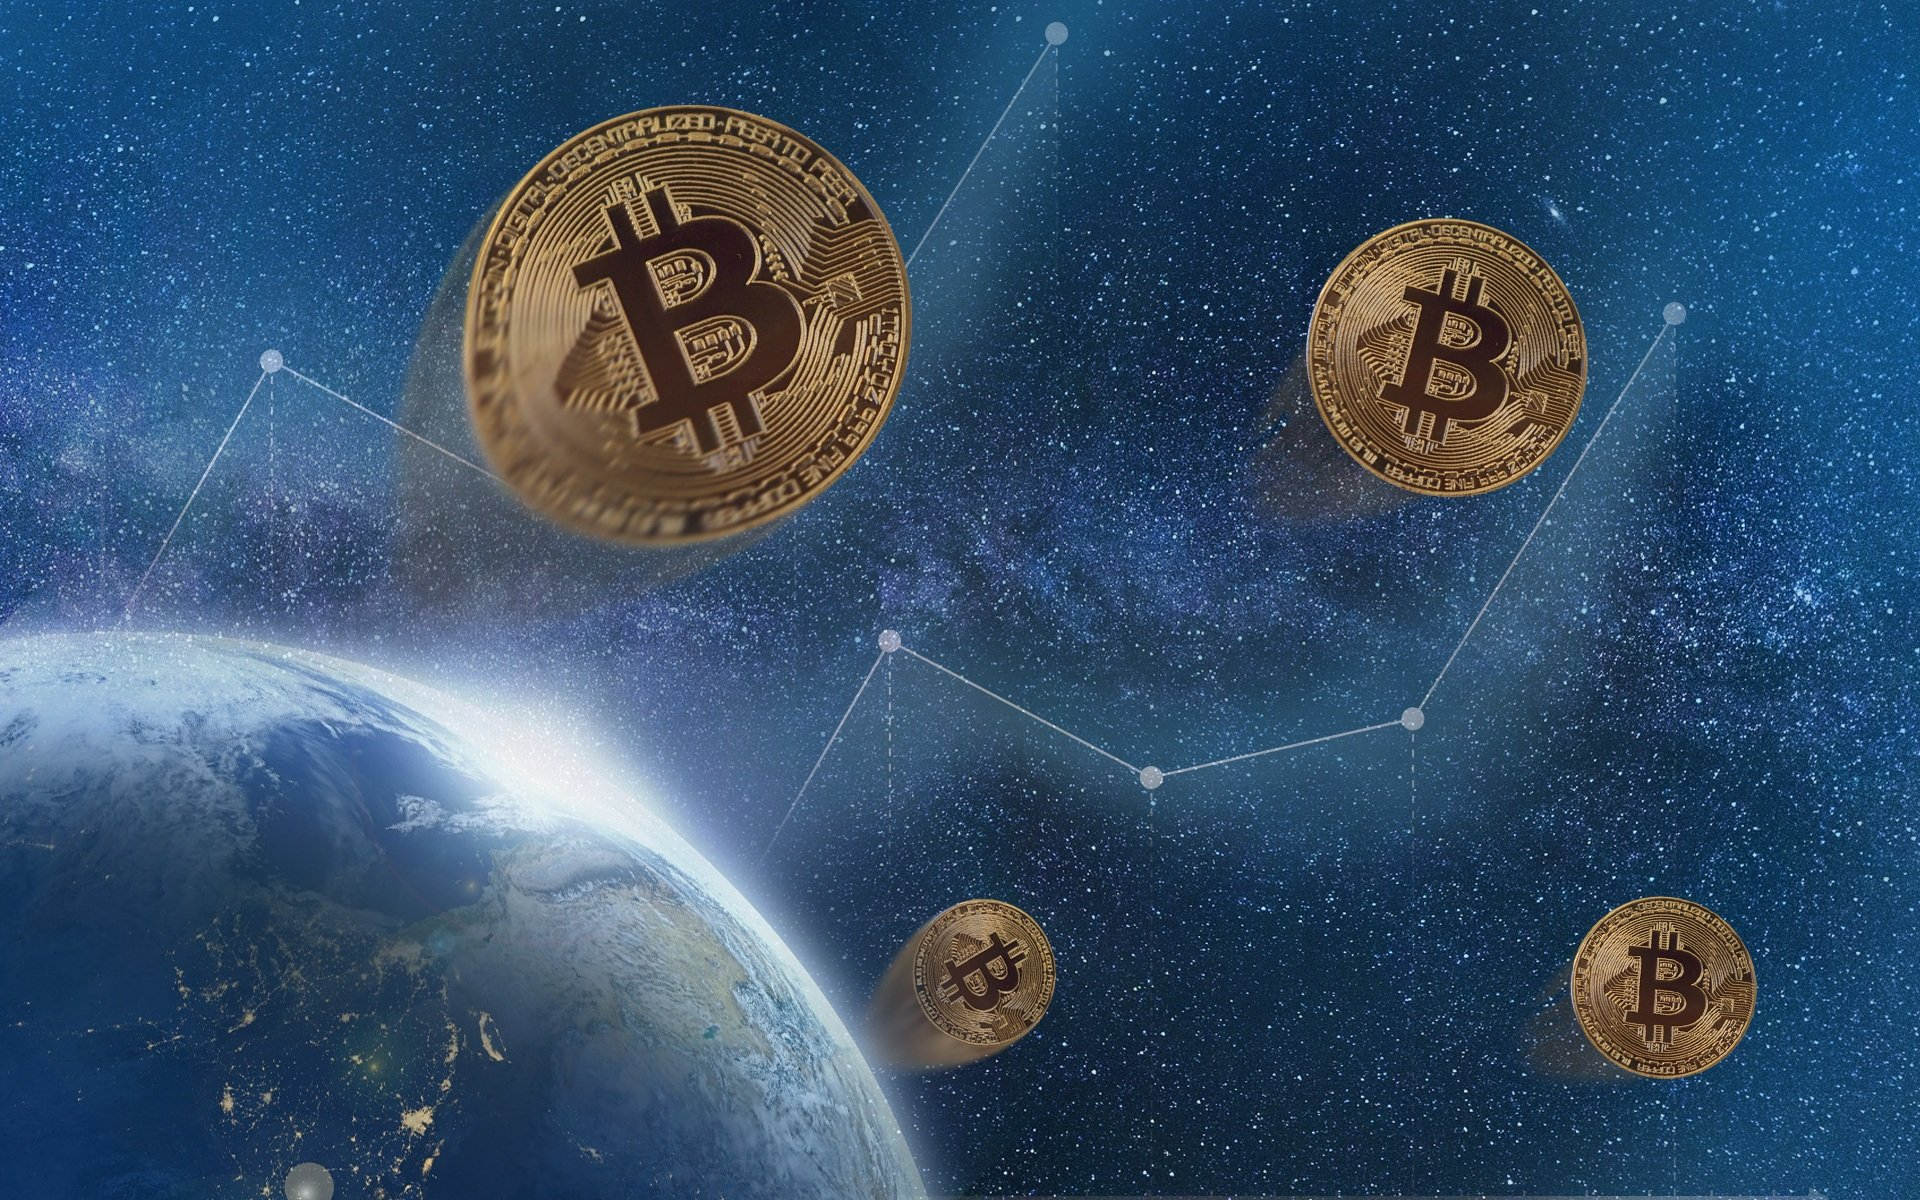 Cme groups bitcoin futures made their debut to little fanfare cme groups bitcoin futures made their debut to little fanfare bitcoinist biocorpaavc Choice Image